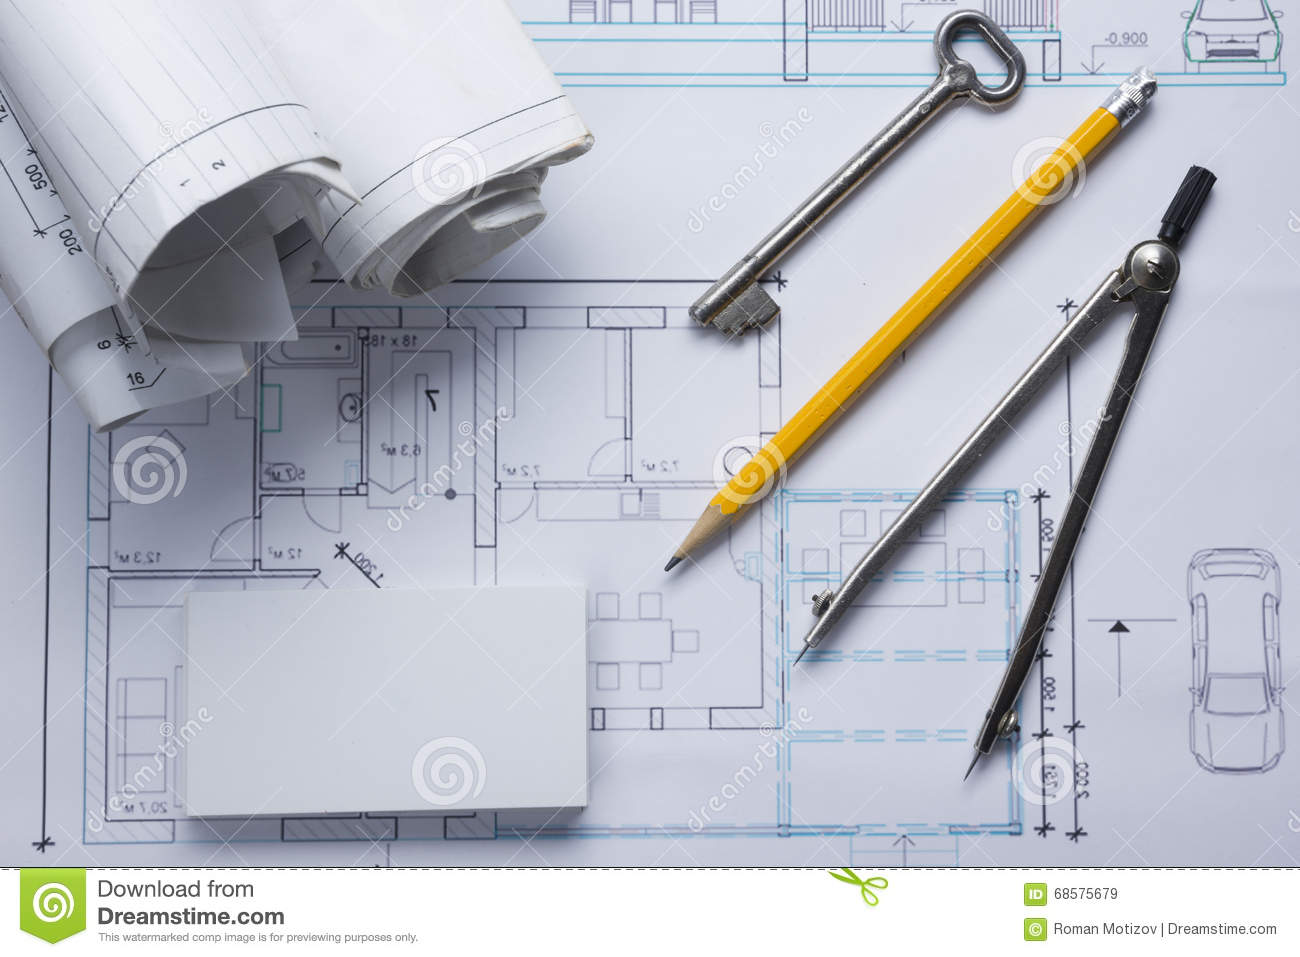 Architect worplace top view architectural project blueprints architect worplace top view architectural project blueprints blueprint rolls and divider compass key blank construction business malvernweather Choice Image